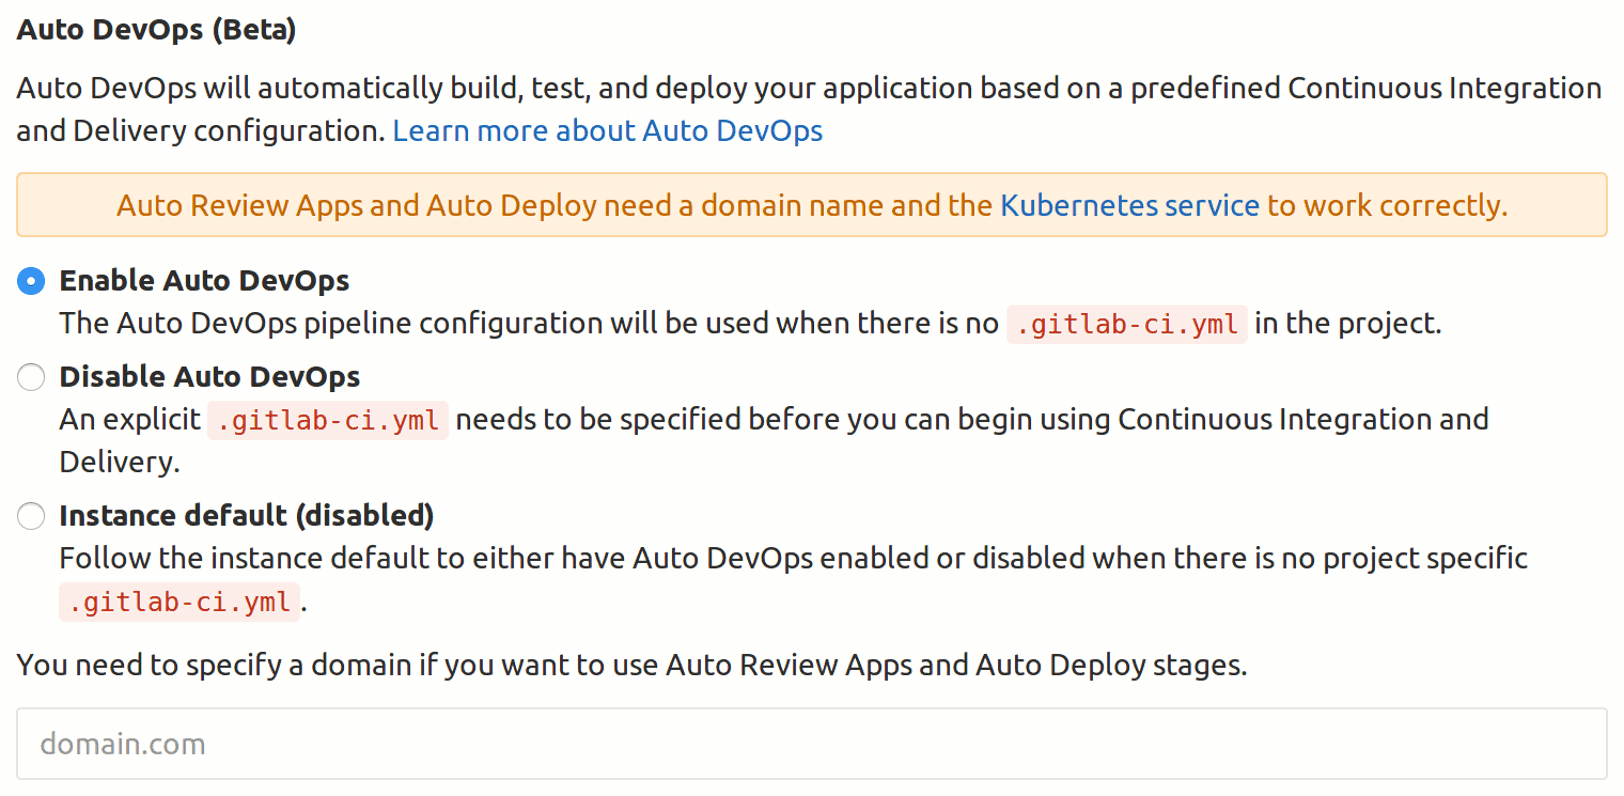 doc/topics/autodevops/img/auto_devops_settings.png